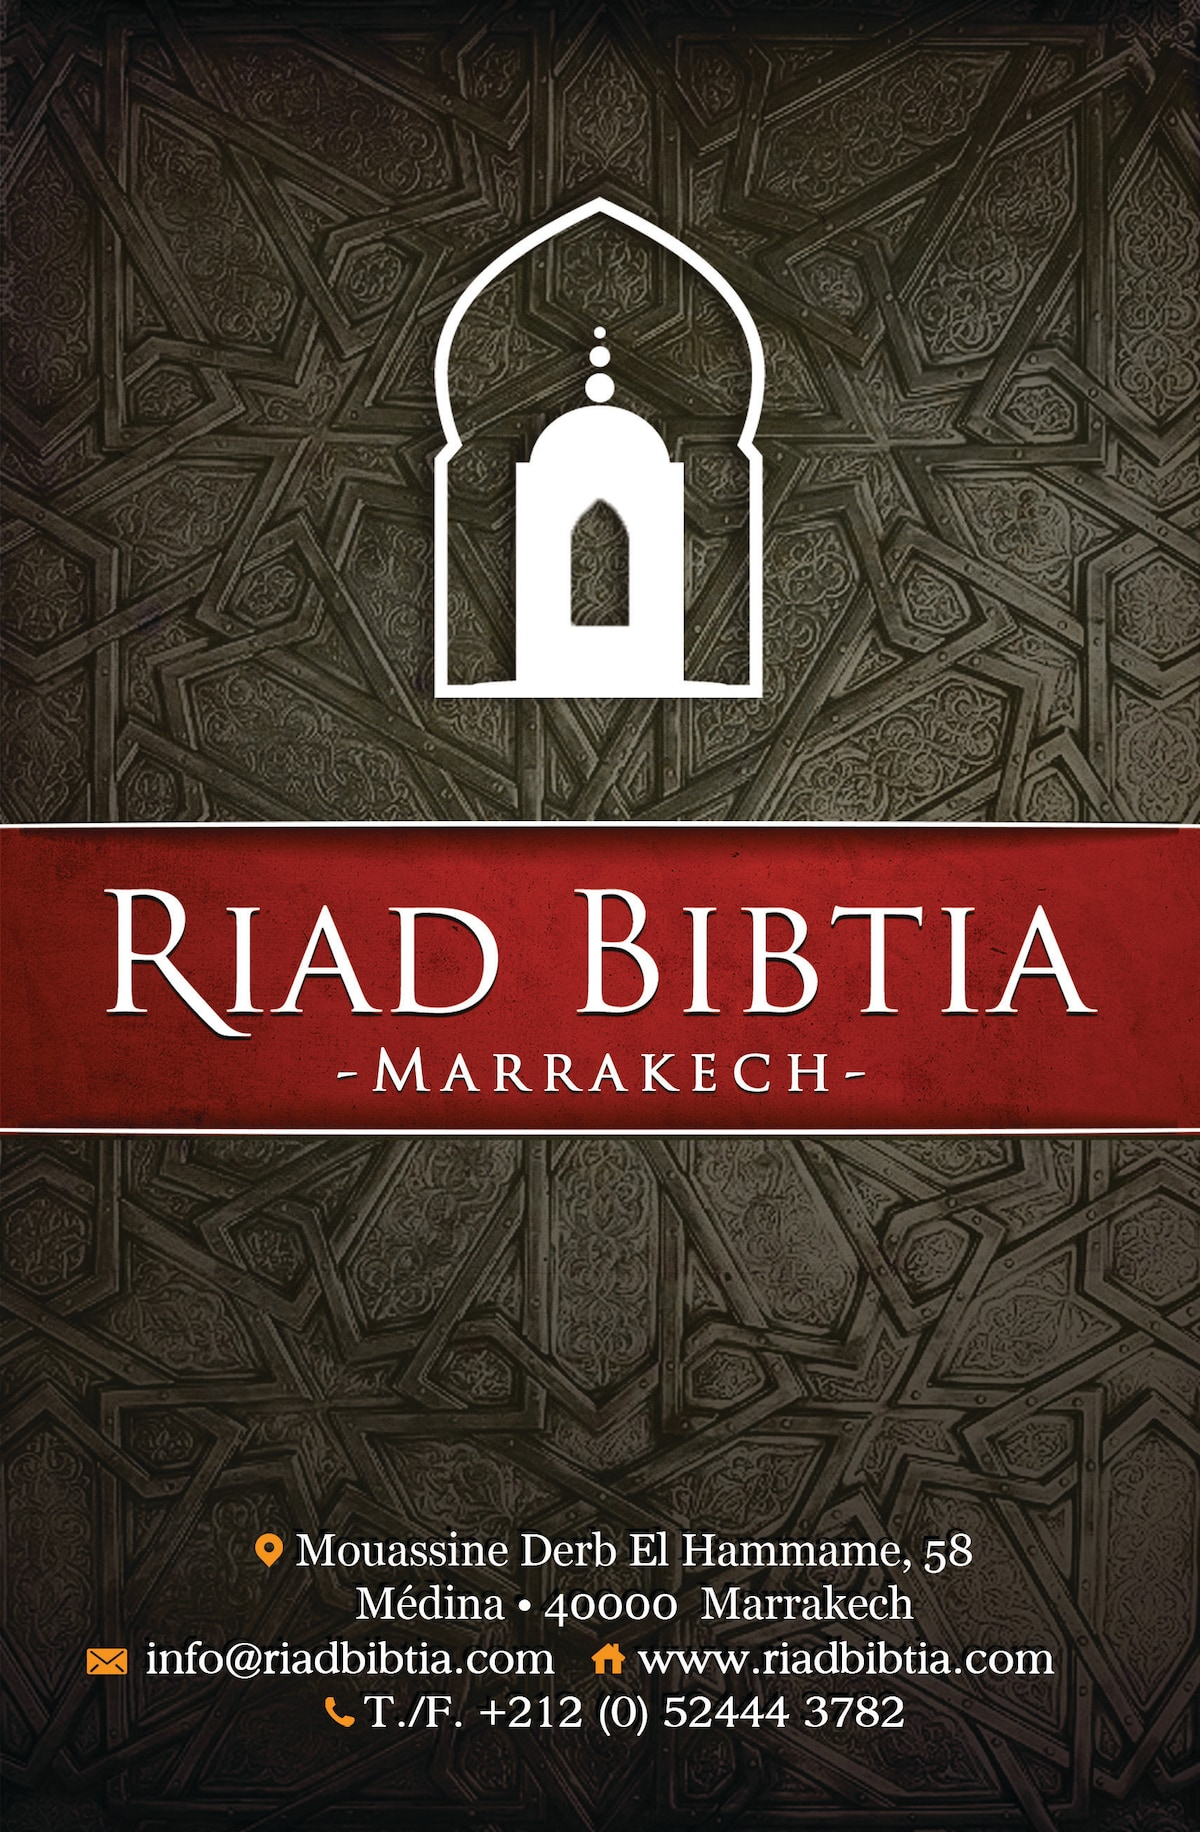 Riad Bibtia From Marrakesh, Morocco